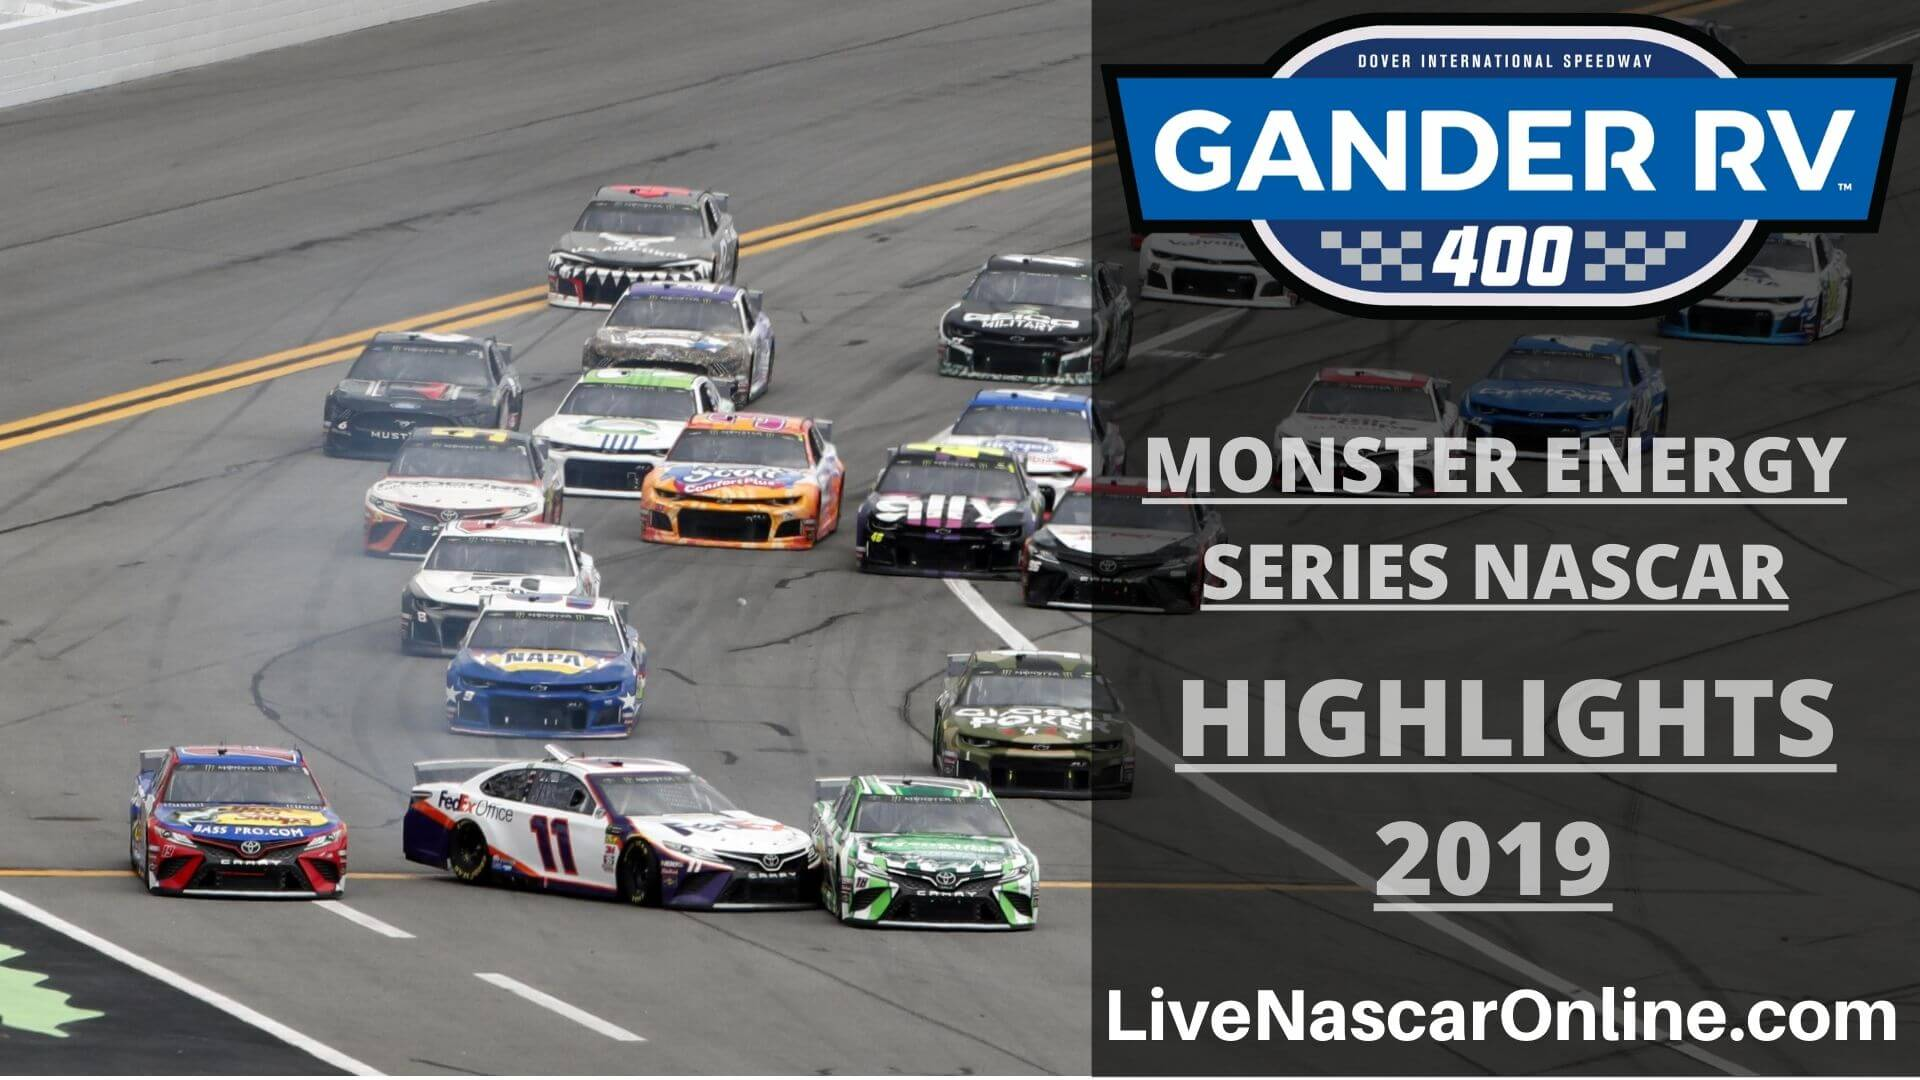 NASCAR Monster Energy Series GANDER RV 400 Highlights 2019 Online